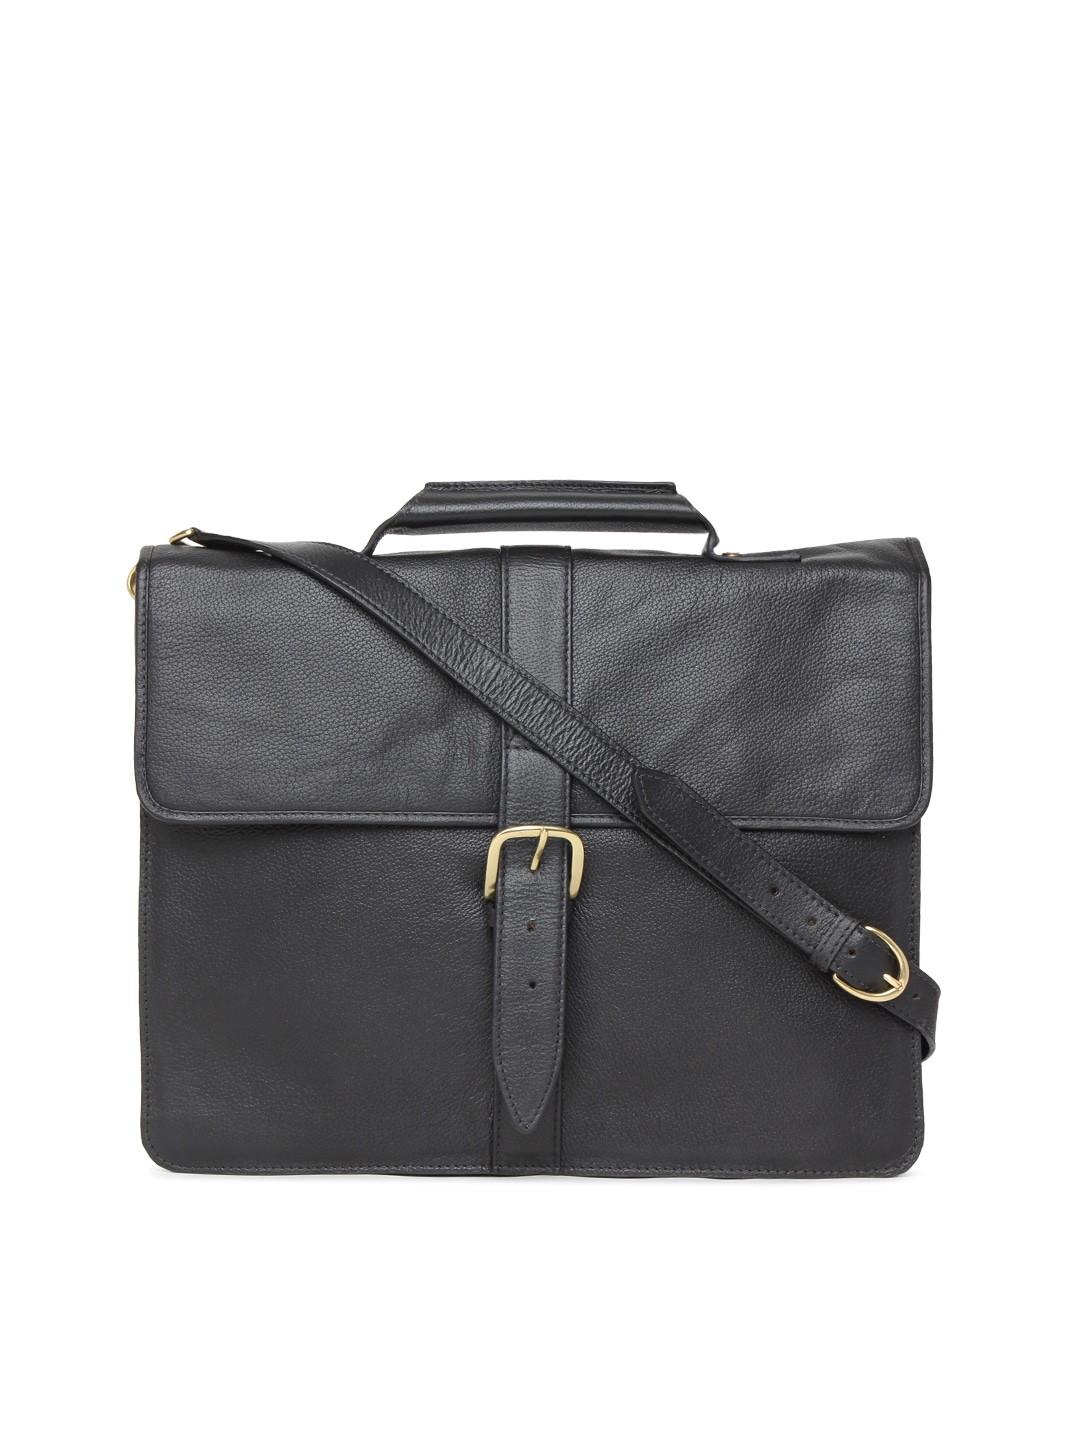 fa1c008d3435 Leather Bag - Buy Leather Bags for Men   Women Online